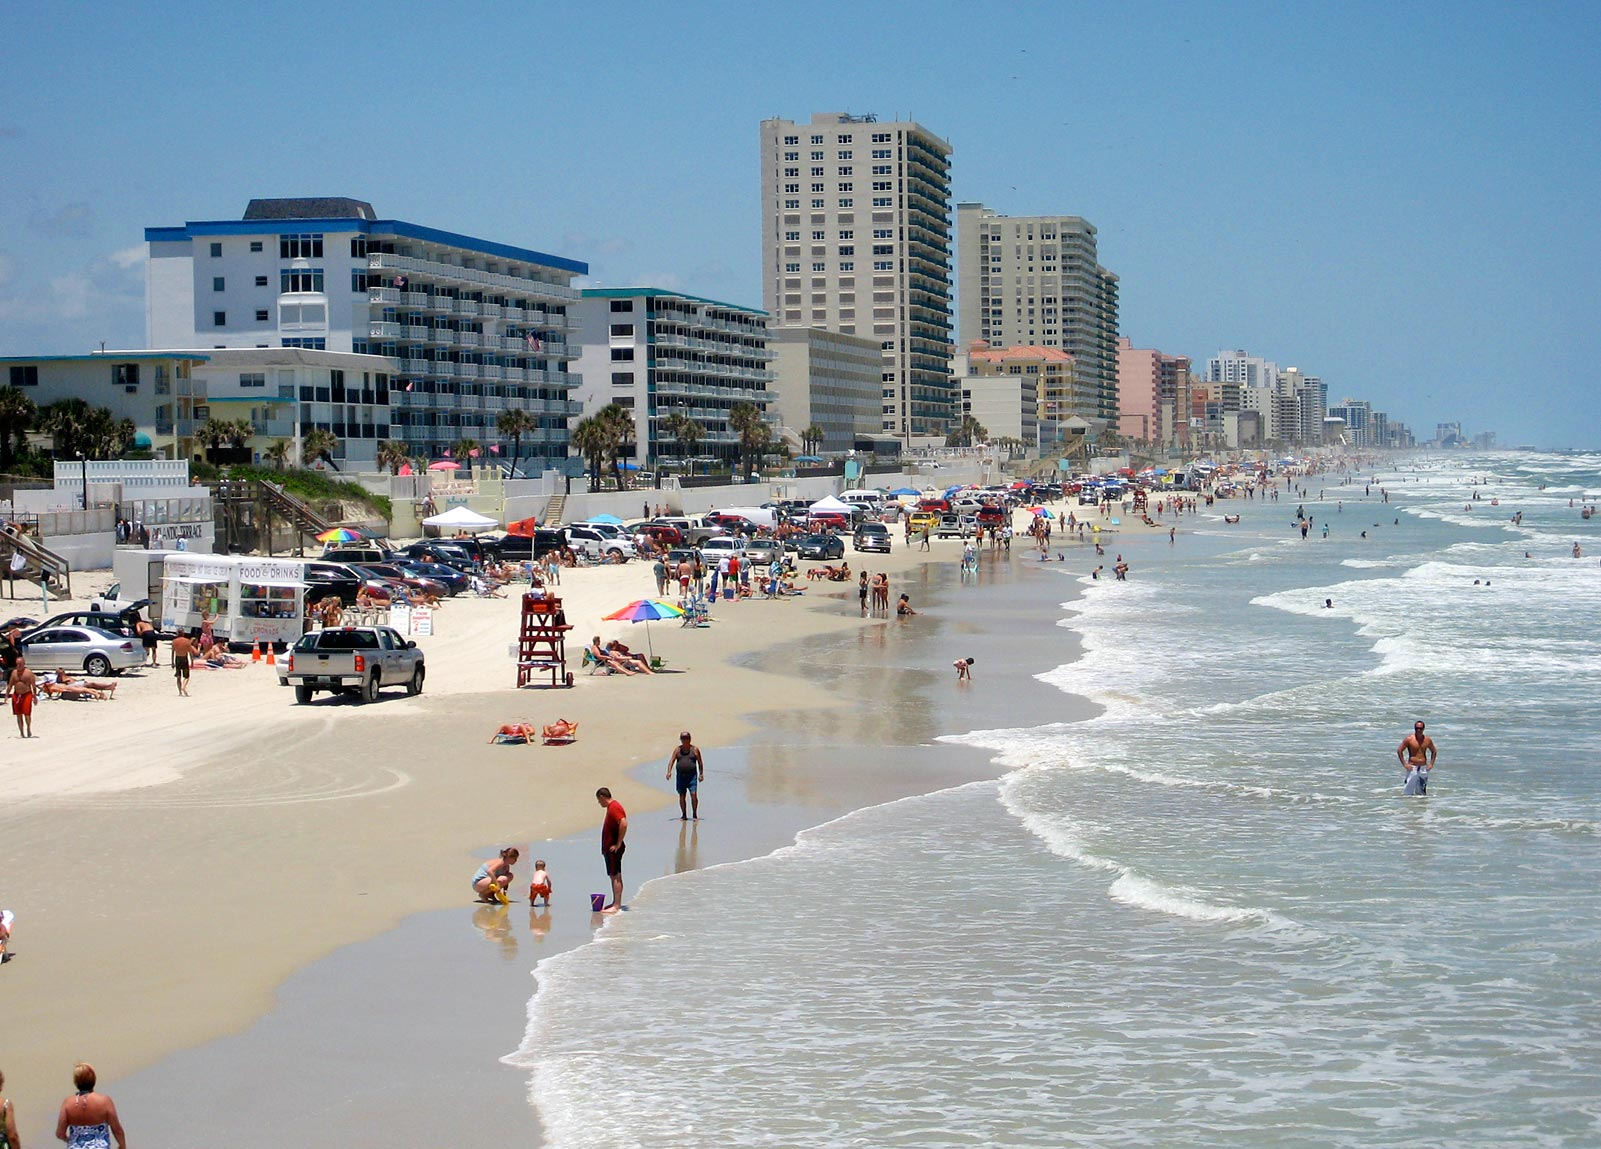 Daytona Beach Cities News Videos Images Websites